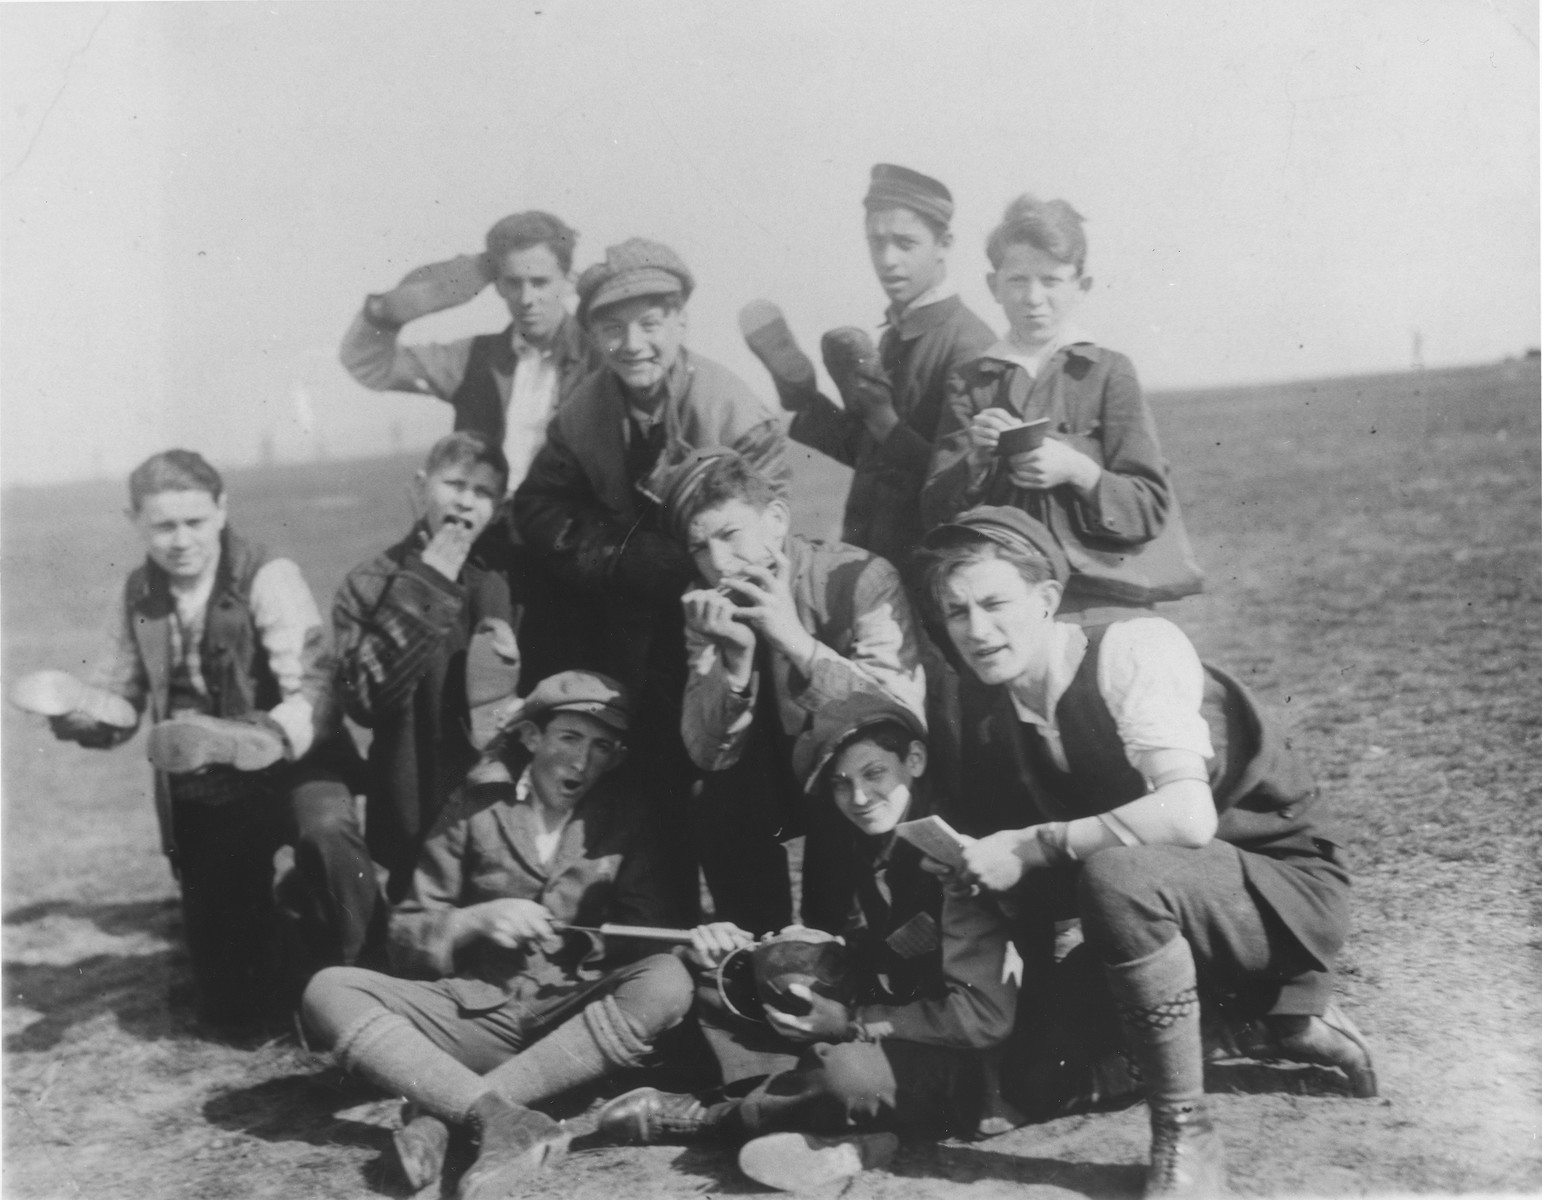 Jewish youth on an outing in Czernowitz.  Among those pictured are Jascha Stein (center); Jacob Flexor (bottom right); and Moshe Kasner (top right).